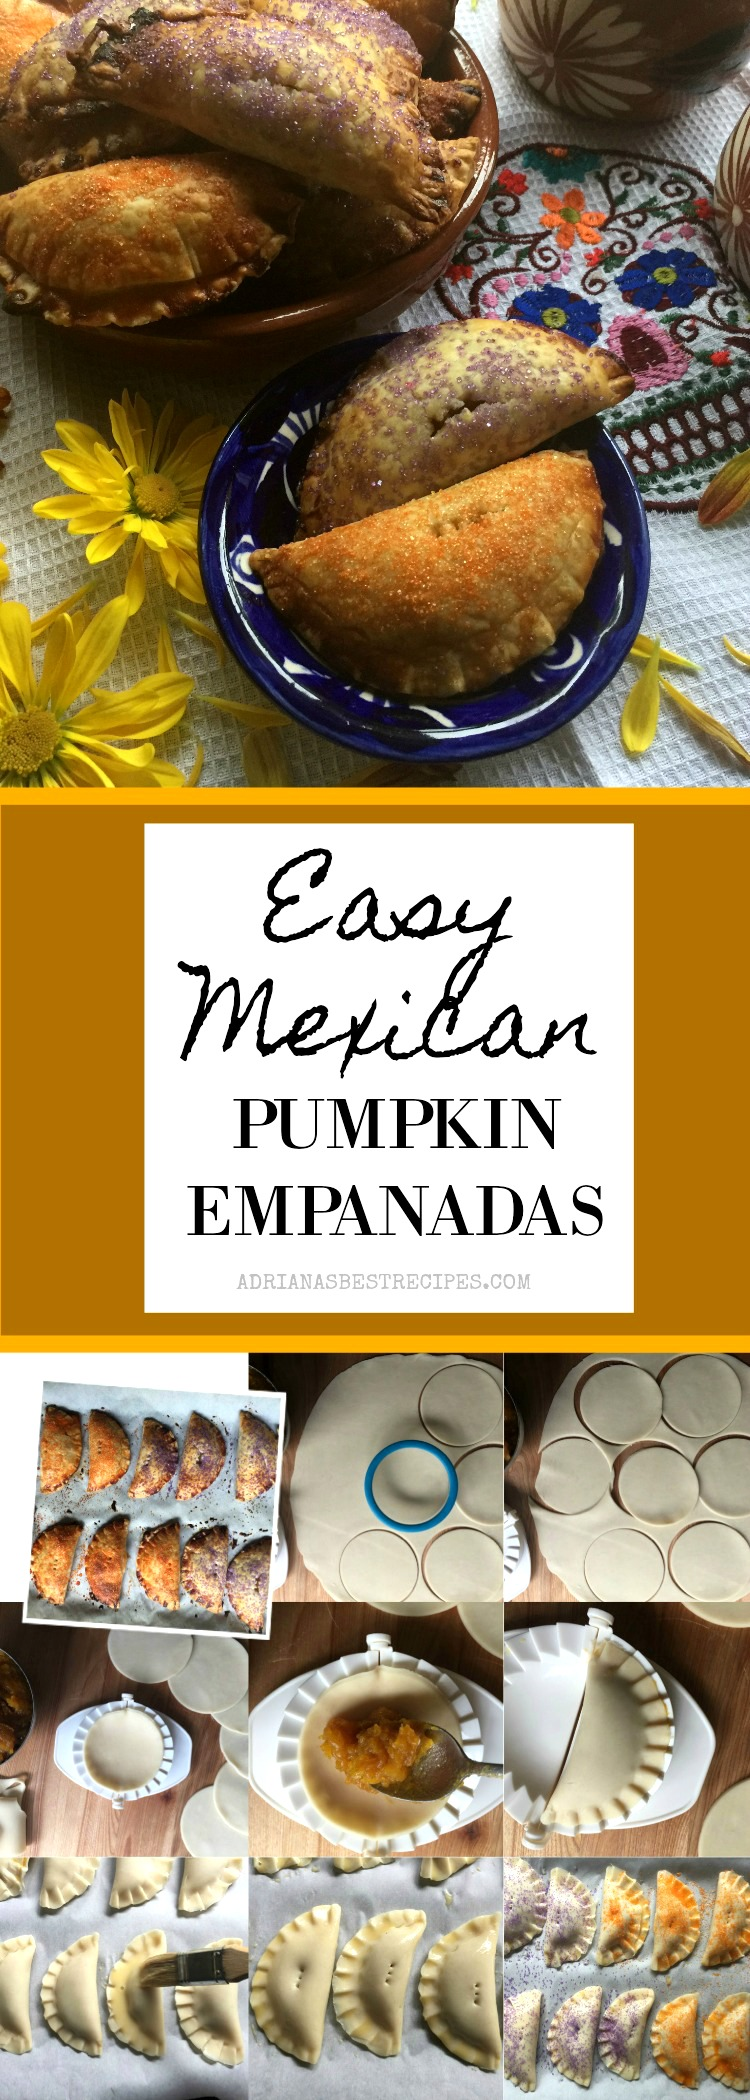 Mexican Pumpkin Empanadas made easy using homemade candied pumpkin puree and ready made pie dough. Perfect addition to Day of the Dead menu